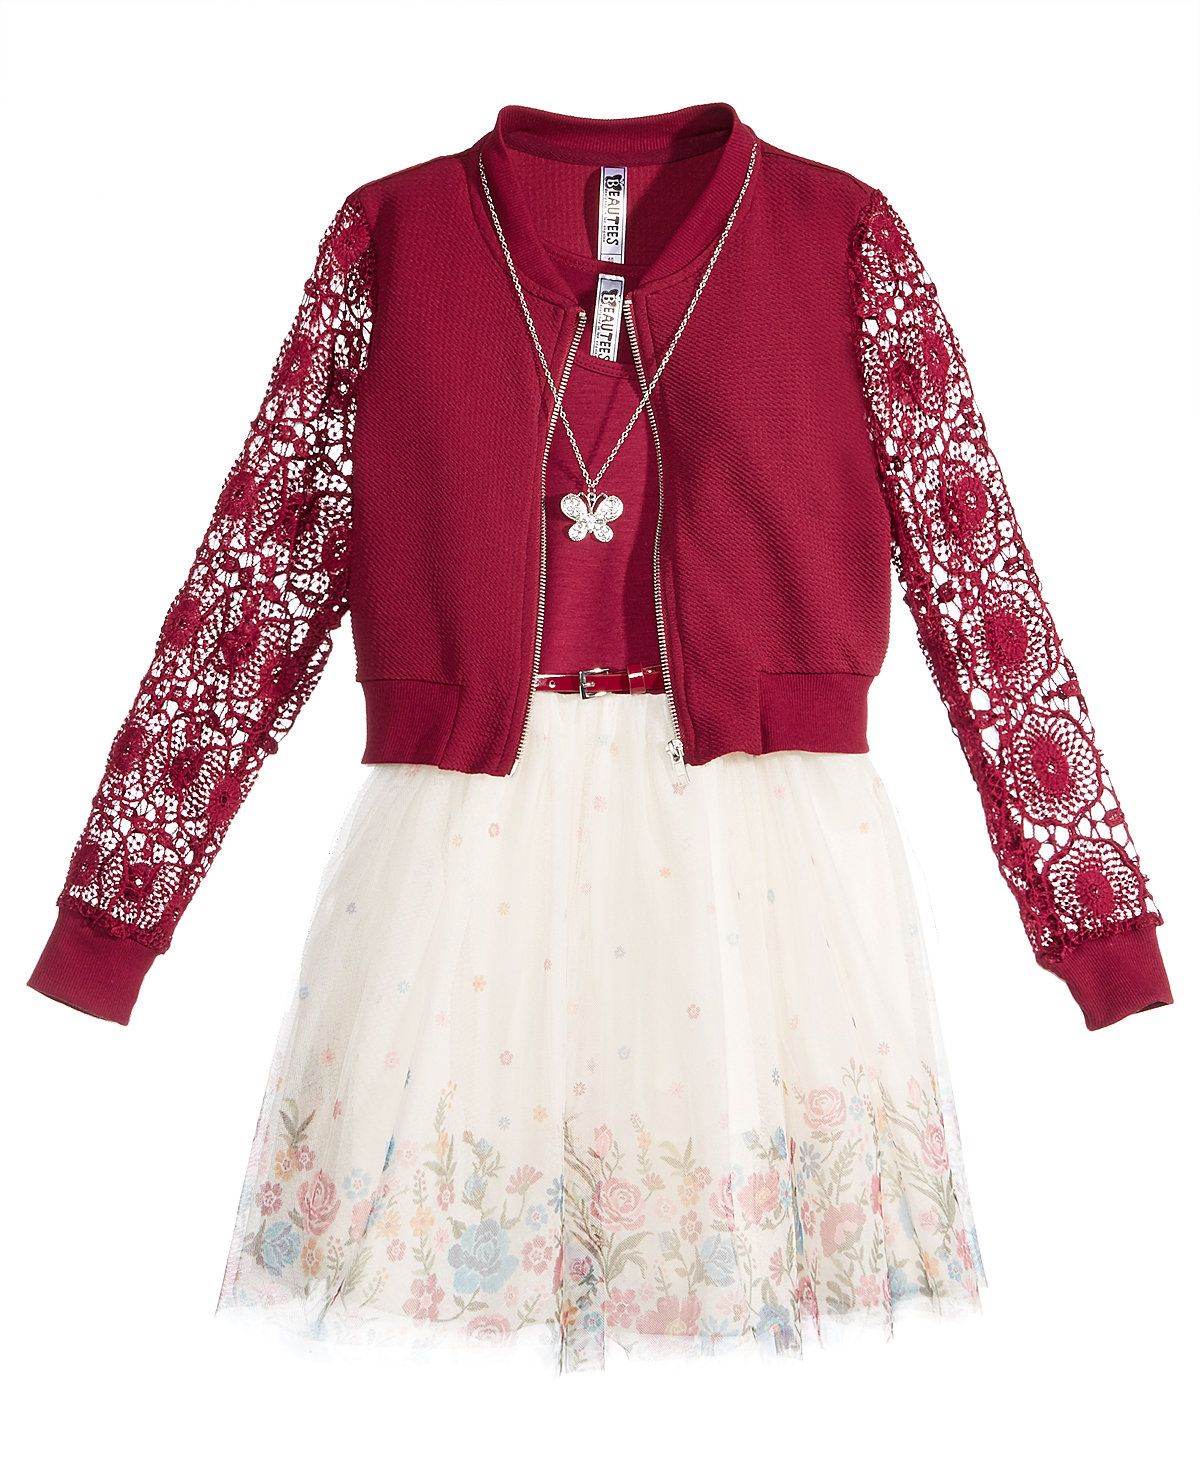 81e8e4f3a Beautees 2-Pc. Lace Bomber Jacket & Dress Set With Coordinating Necklace,  Big Girls (7-16) - Big Girls (7-16) - Kids & Baby - Macy's